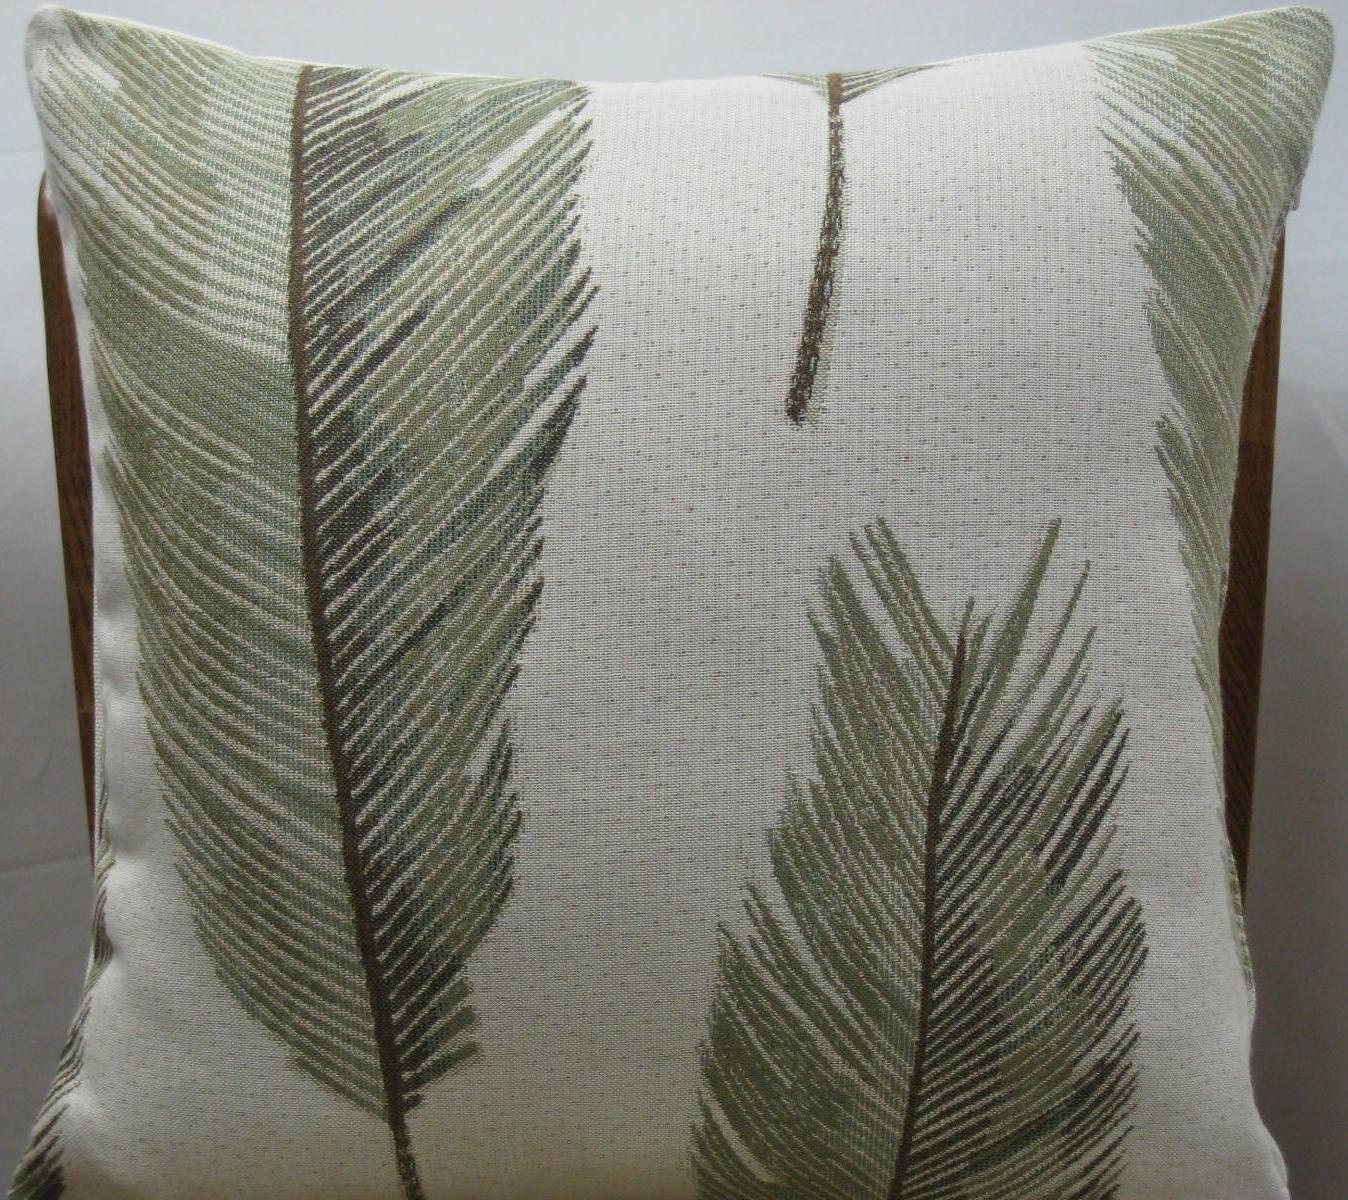 Decorative Pillow Palm Tree : Palm tree leaves decorative pillow cover-18 x 18